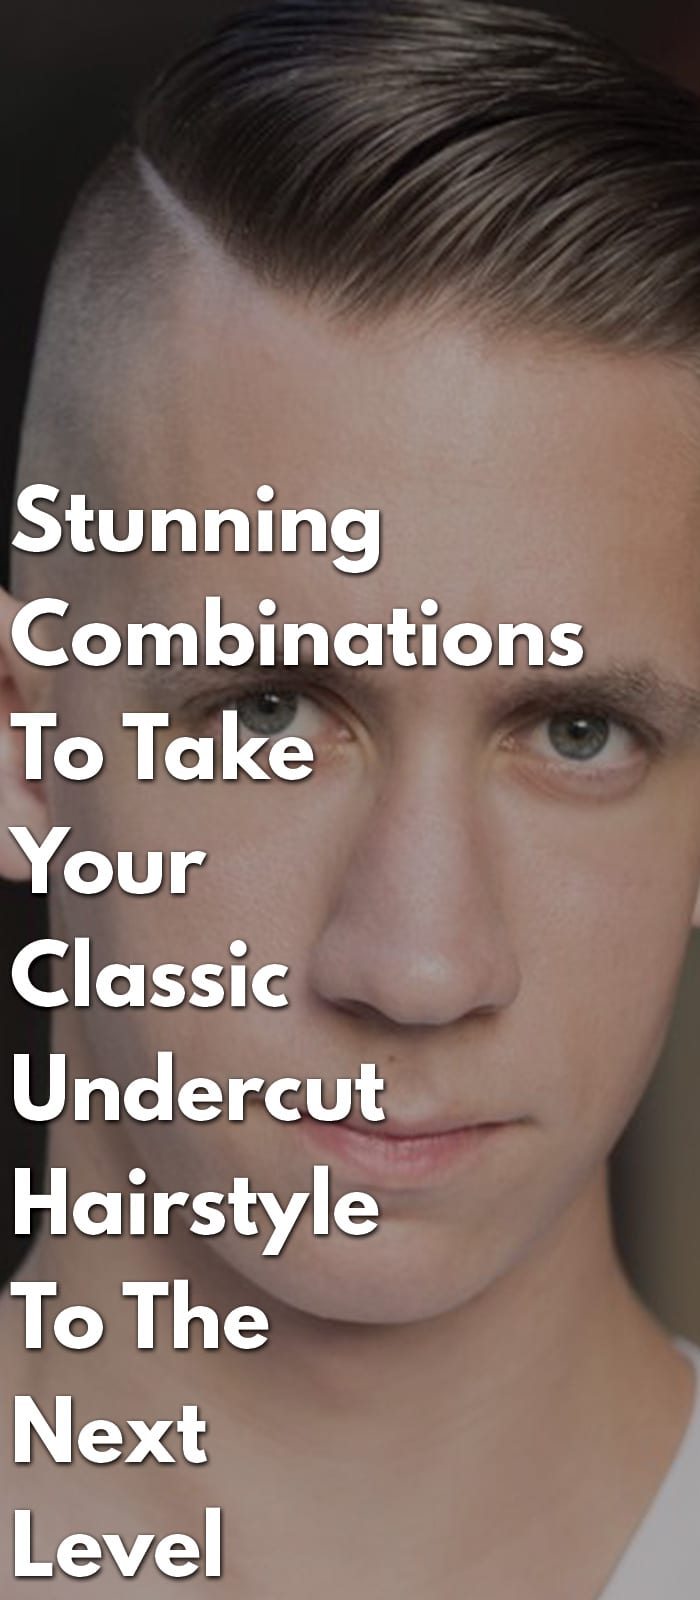 Stunning Combinations To Take Your Classic Undercut Hairstyle To The Next Level